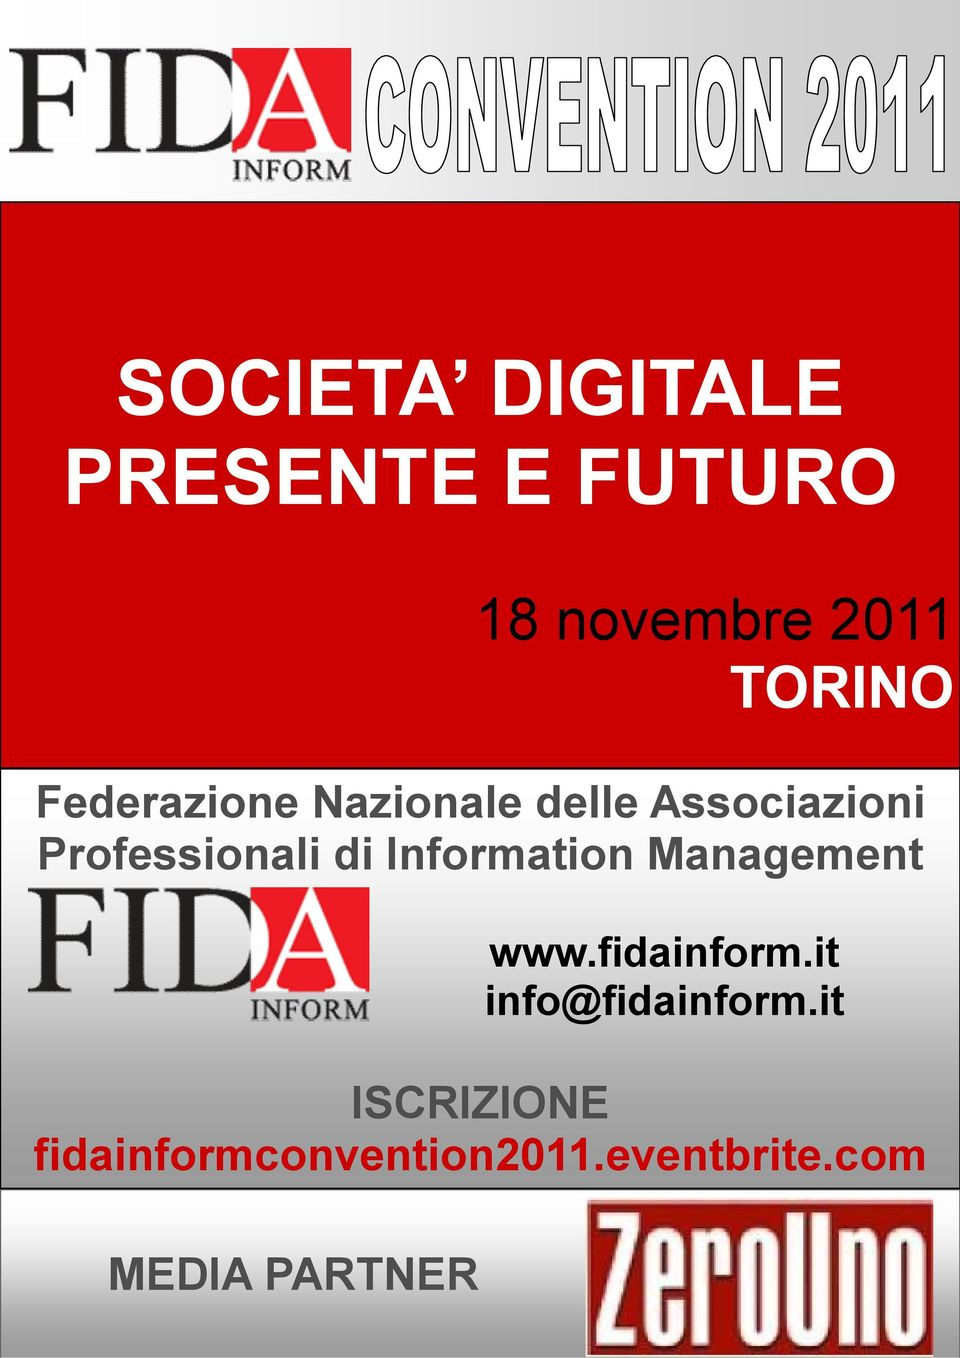 Information Management www.fidainform.it info@fidainform.